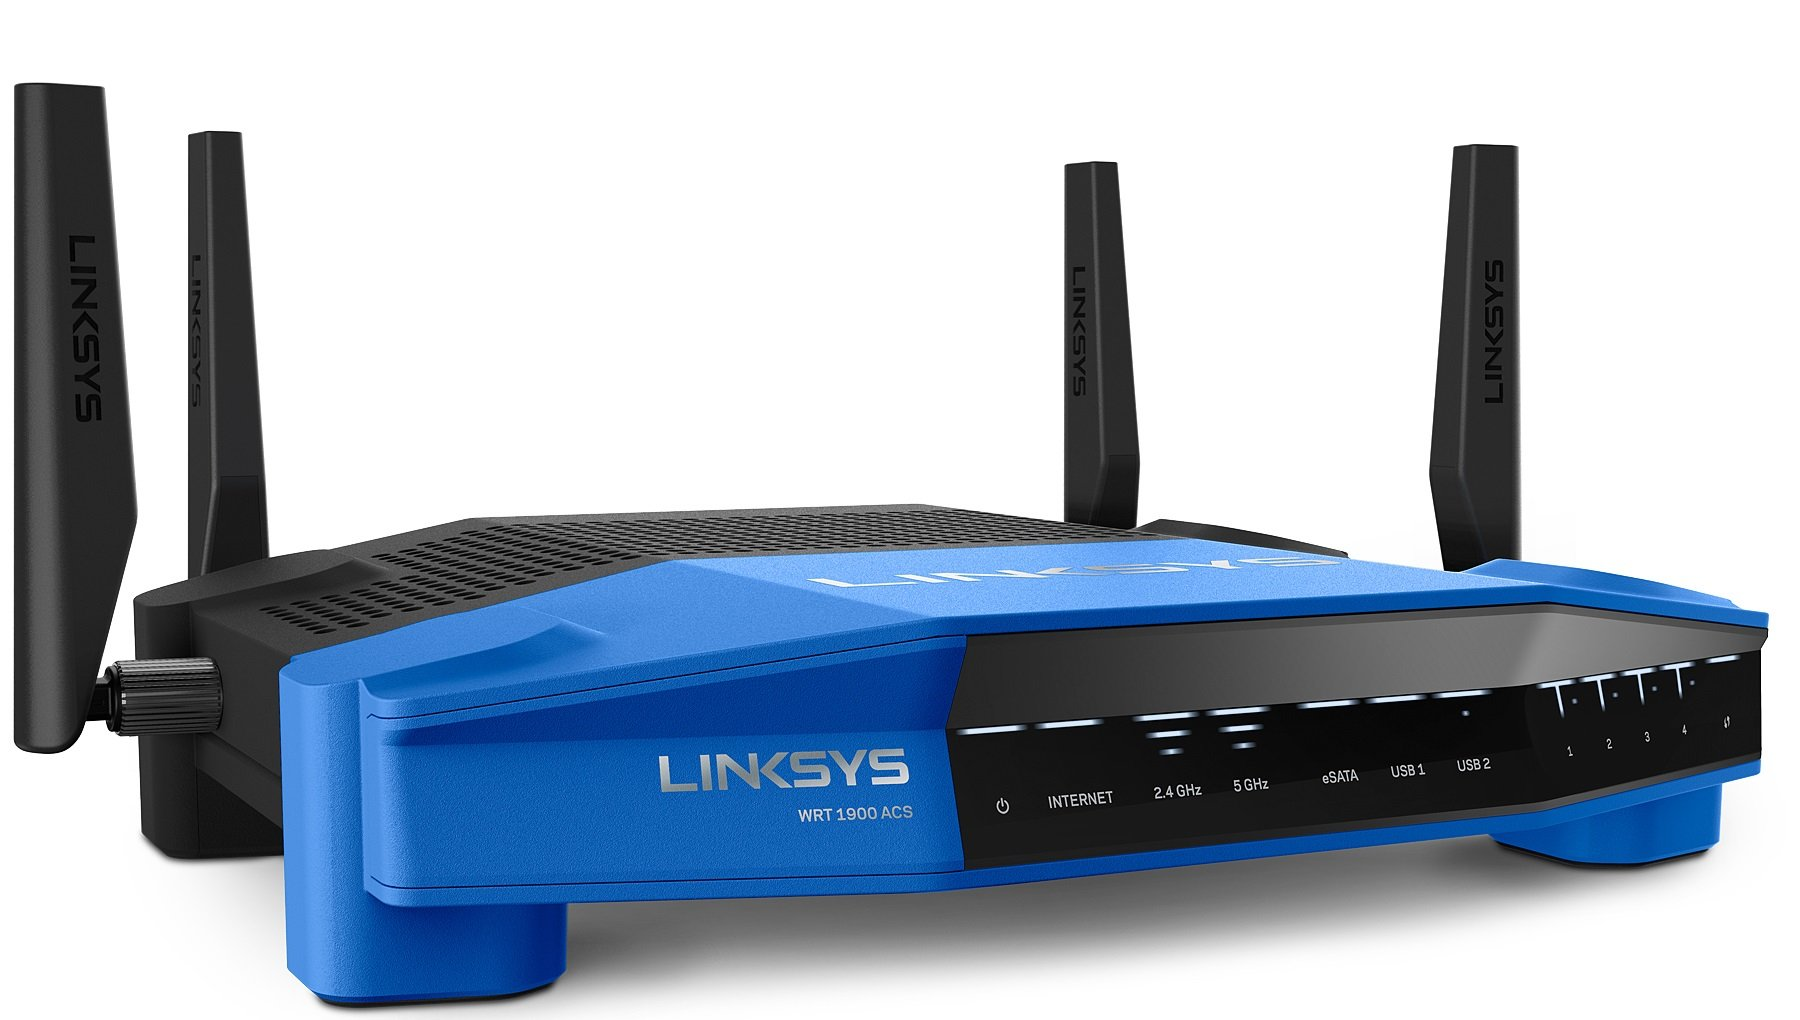 Linksys AC1900 Dual Band Open Source WiFi Wireless Router (WRT1900ACS)